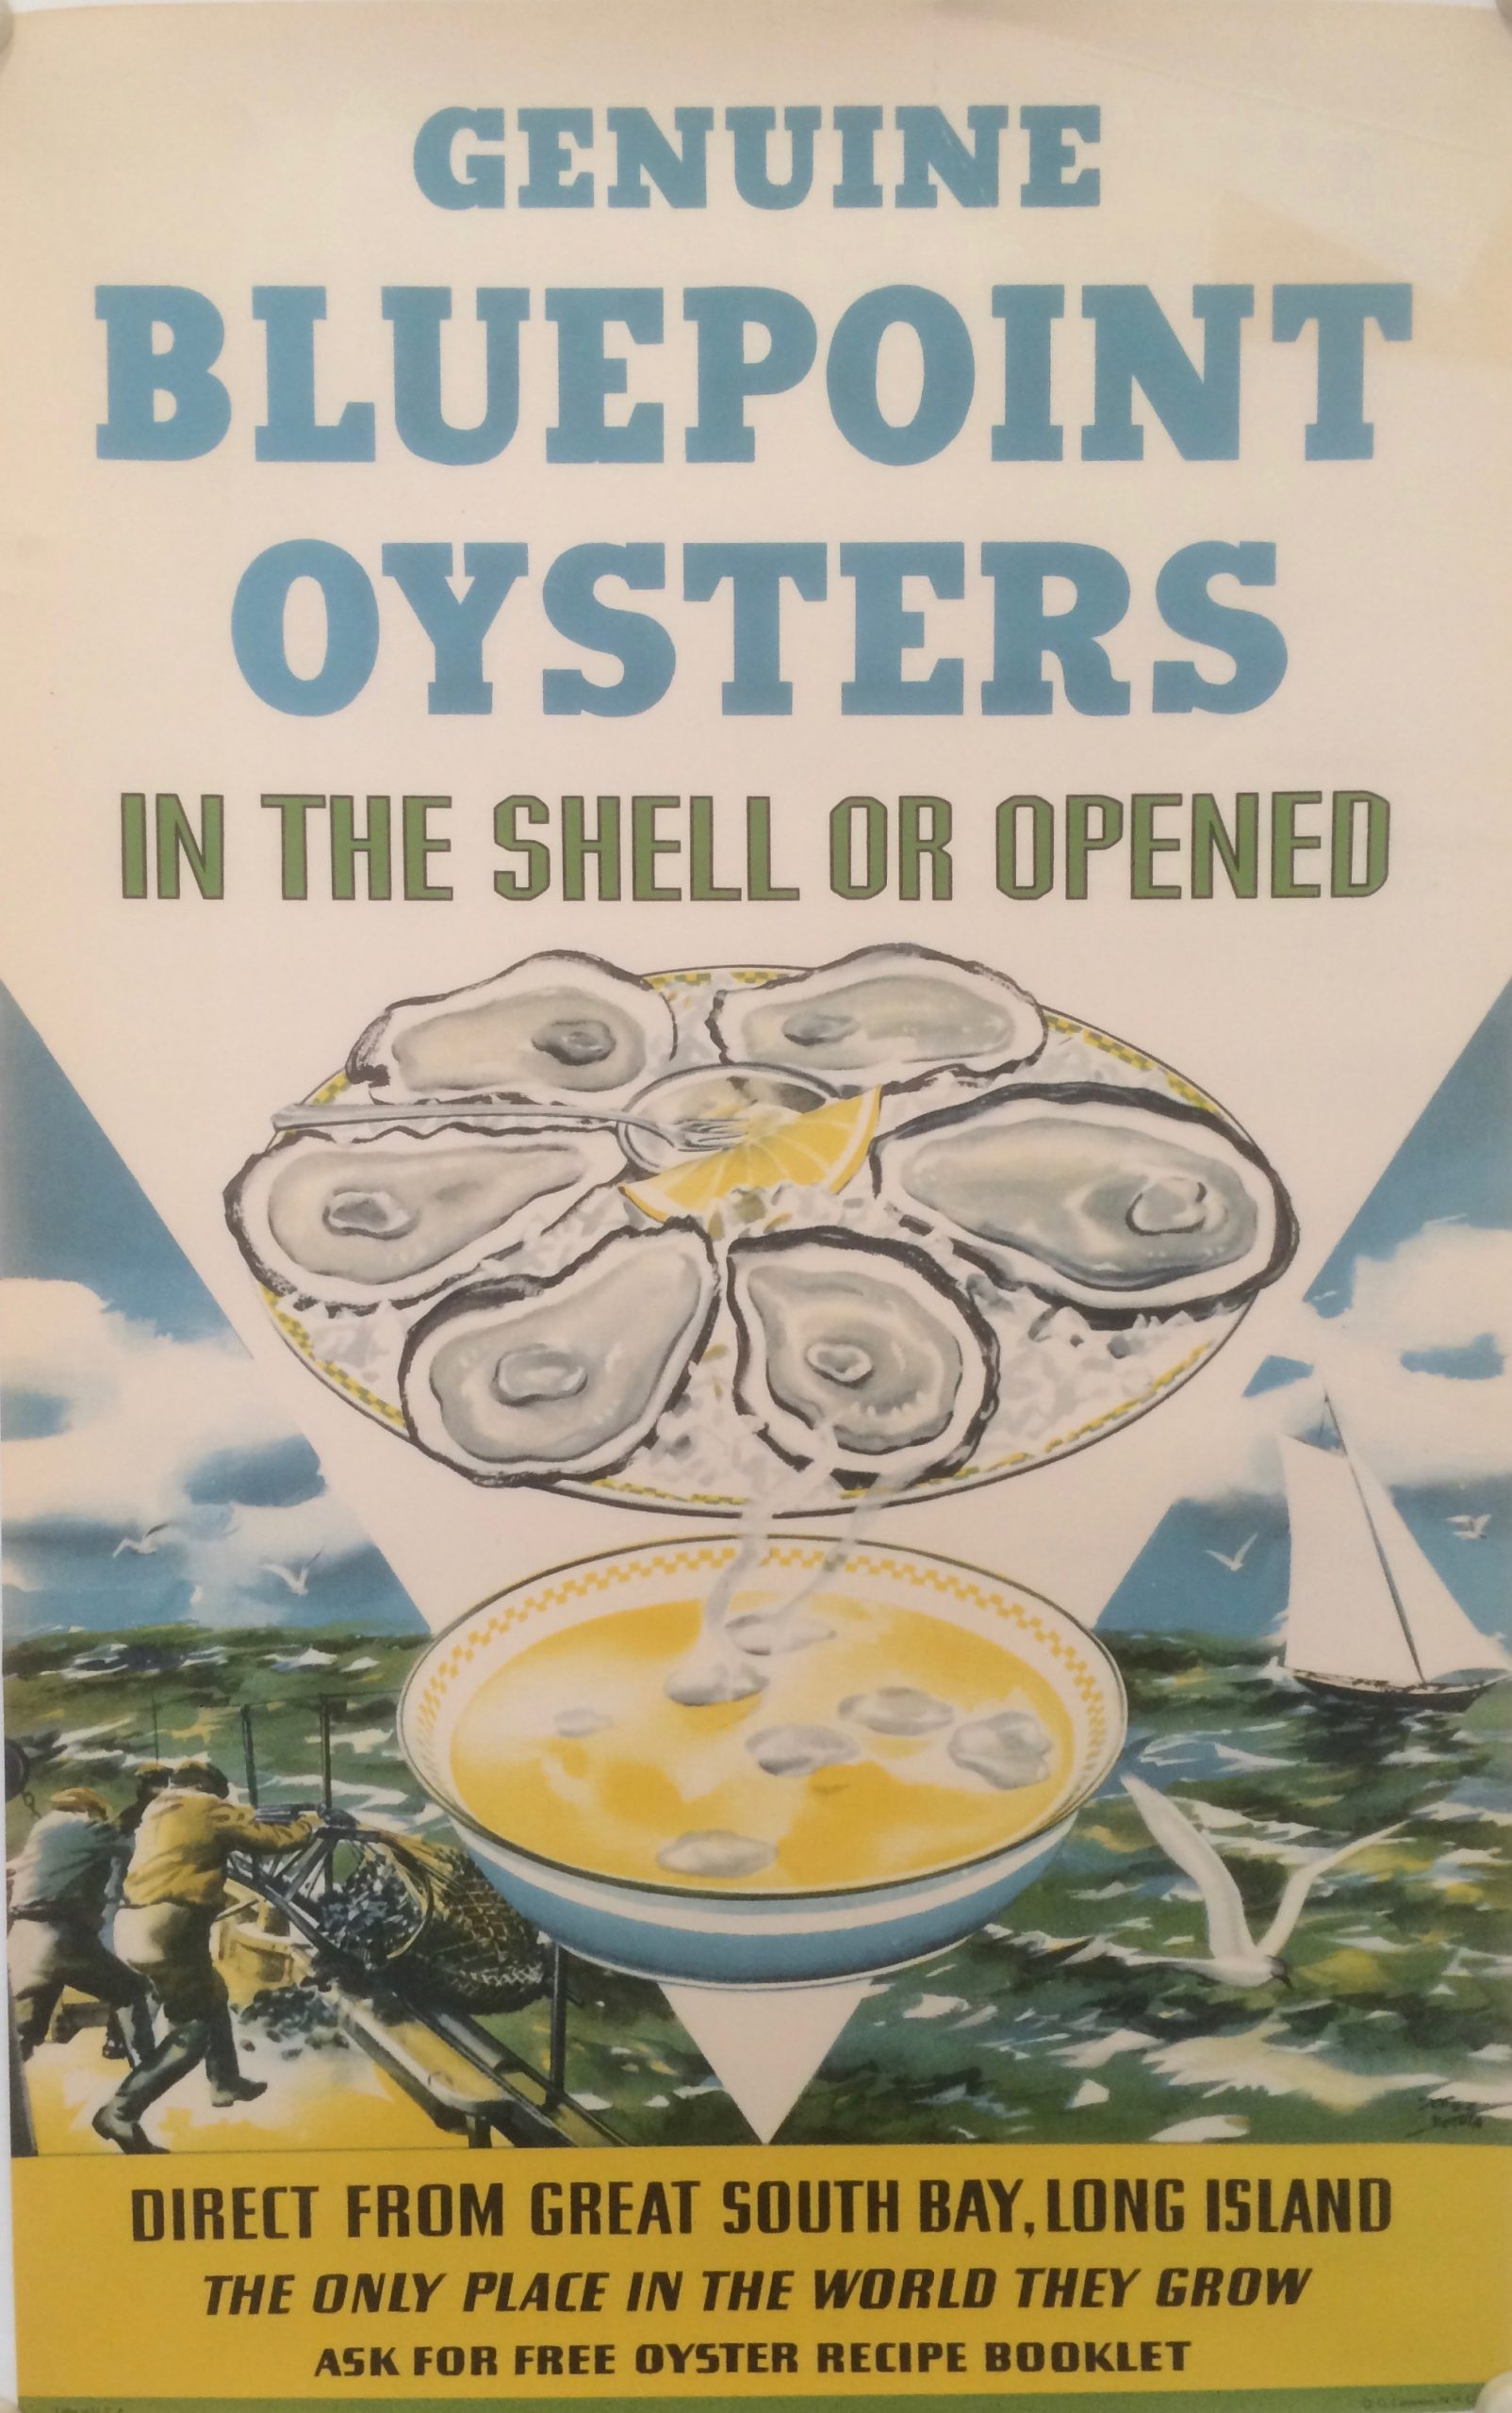 poster advertising Bluepoint Oysters